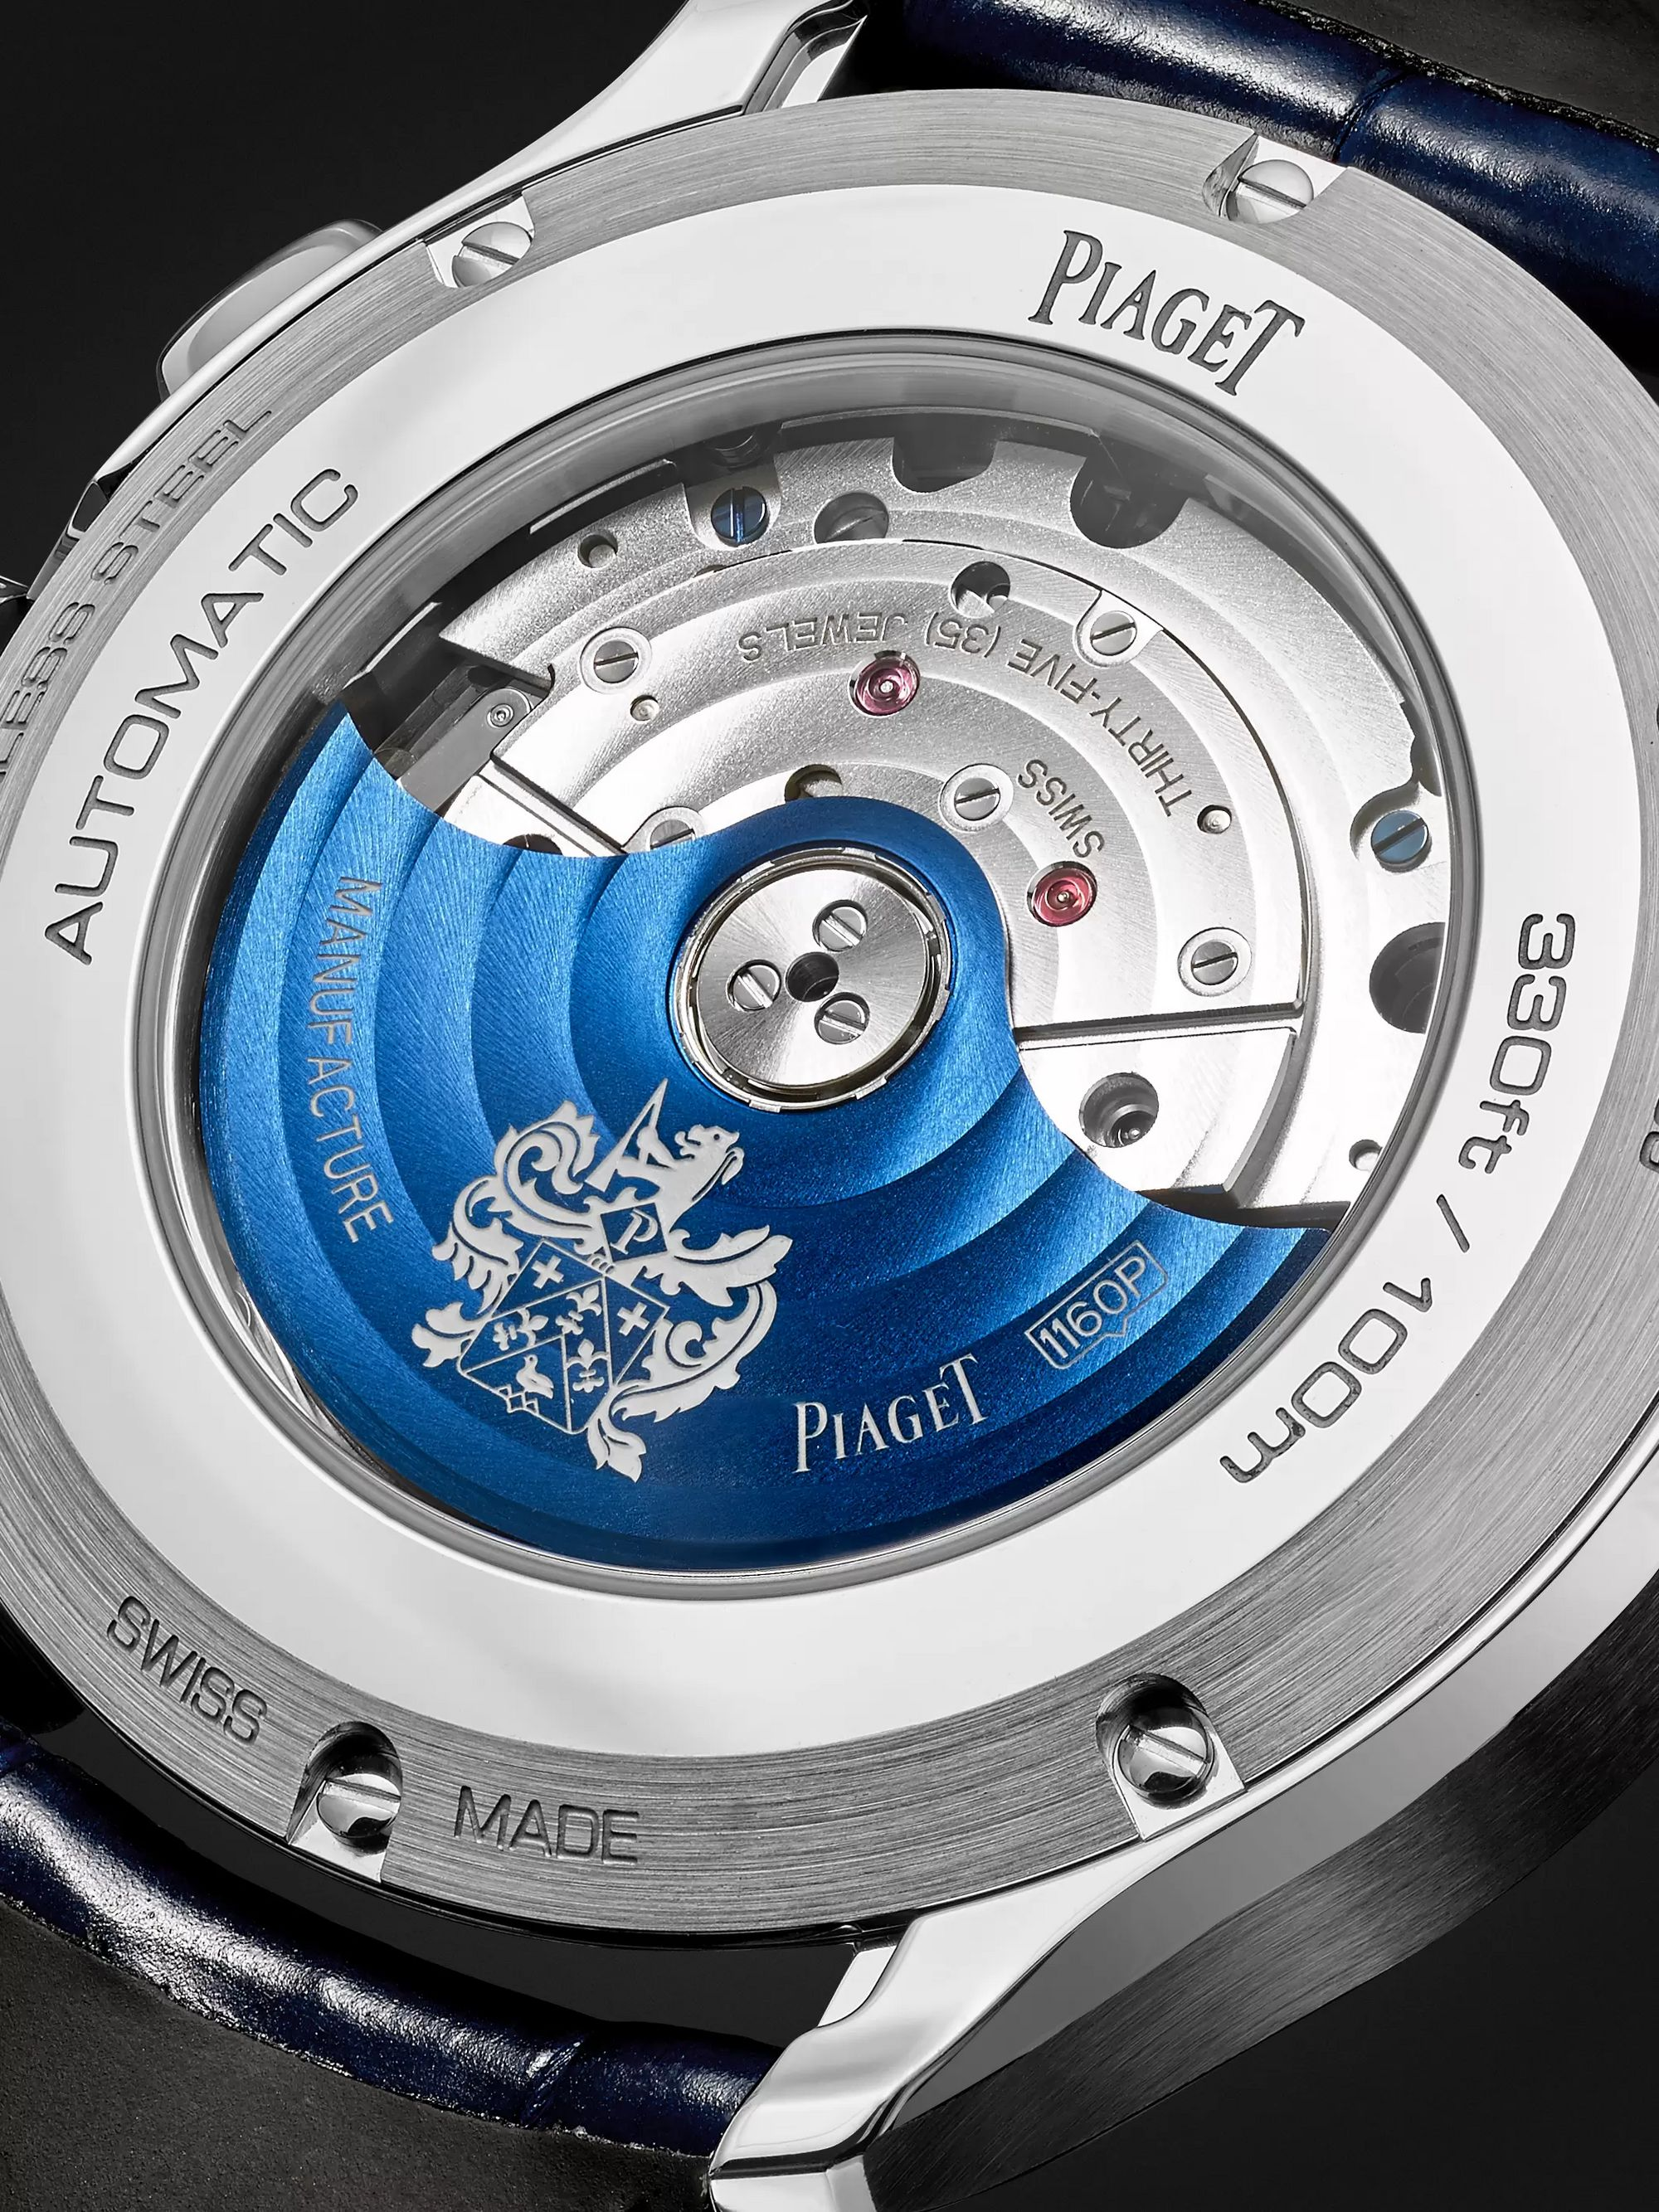 Piaget Polo S Automatic 42mm Stainless Steel and Alligator Watch, Ref. No. G0A43002